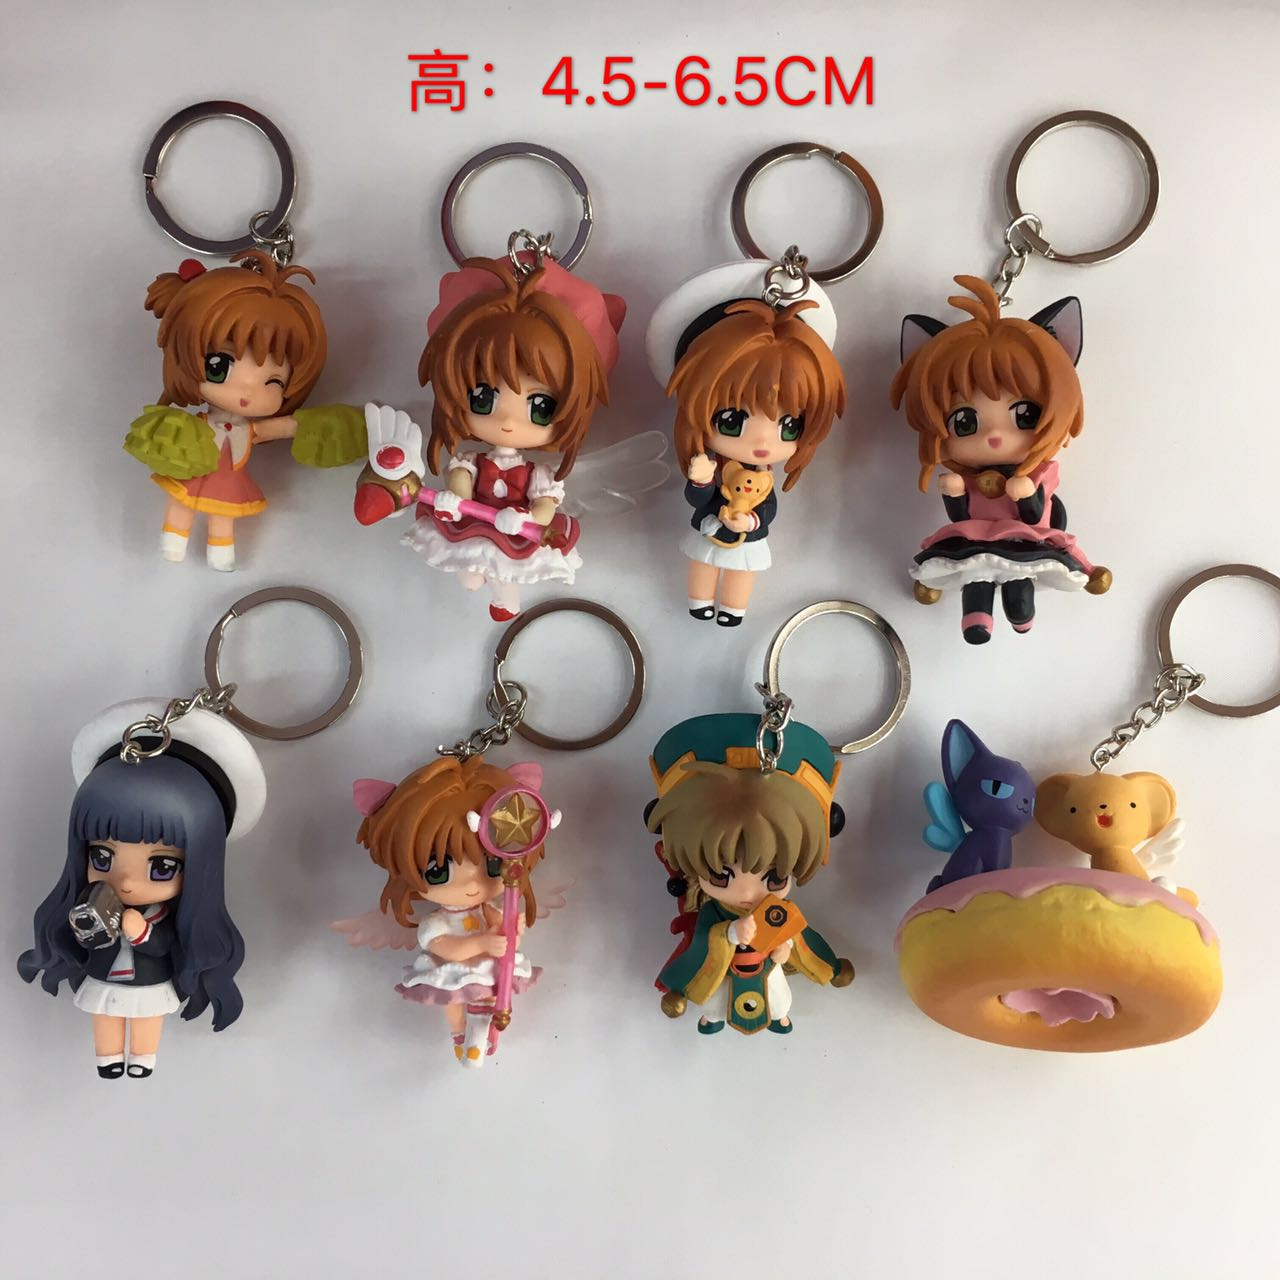 Anime Card Captor Sakura PVC Figures Toys Keychains 8pcs/set Kinomoto Sakura Daidouji Tomoyo Li Syaoran Kero 8pc set anime card captor sakura pvc figures toys kinomoto sakura figures model collection